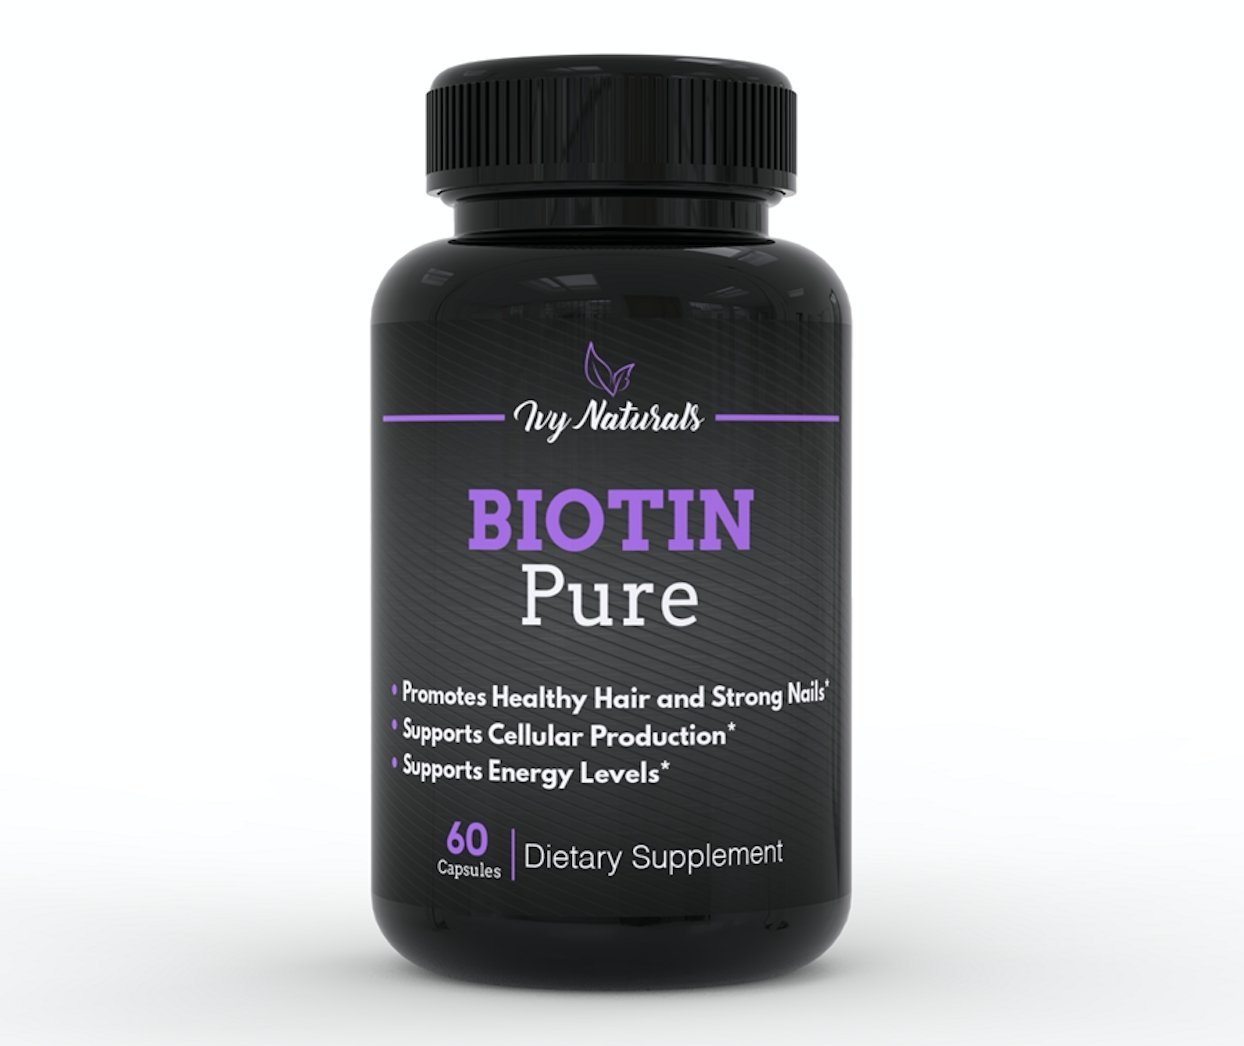 Biotin by Ivy Naturals    60 Ct Pure and Powerful Biotin    Promotes Strong and Beautiful Hair    Strengthens Nails and Clears Skin    100% Satisfaction Guarantee